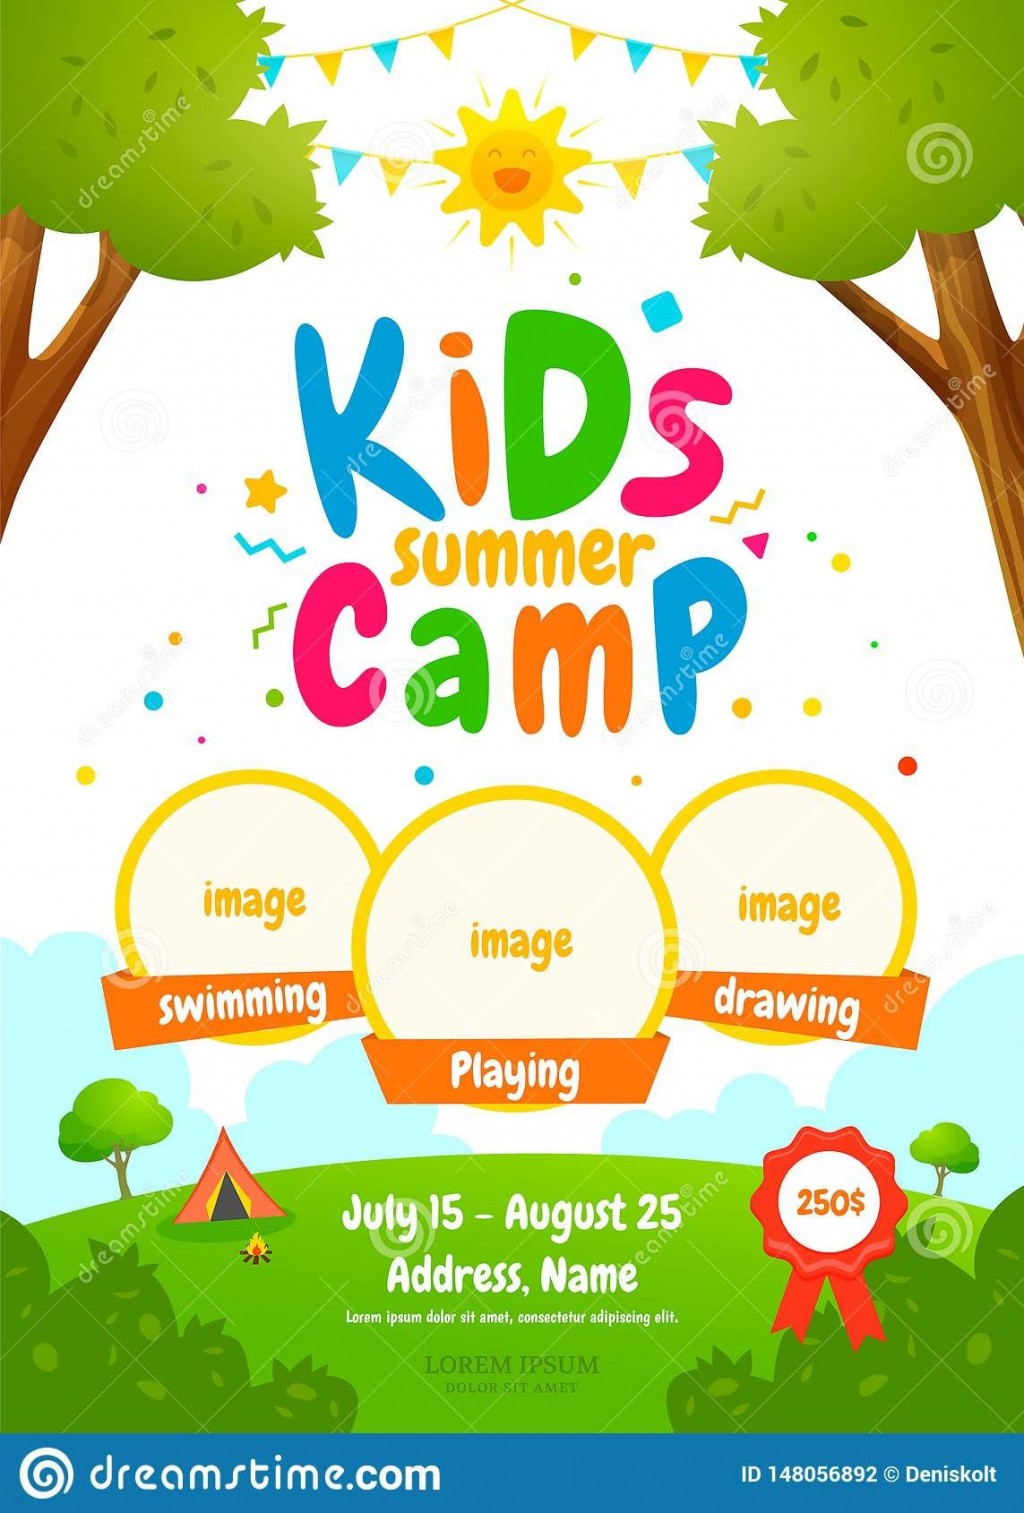 006 Outstanding Summer Camp Flyer Template Concept  Day Microsoft Word BackgroundLarge